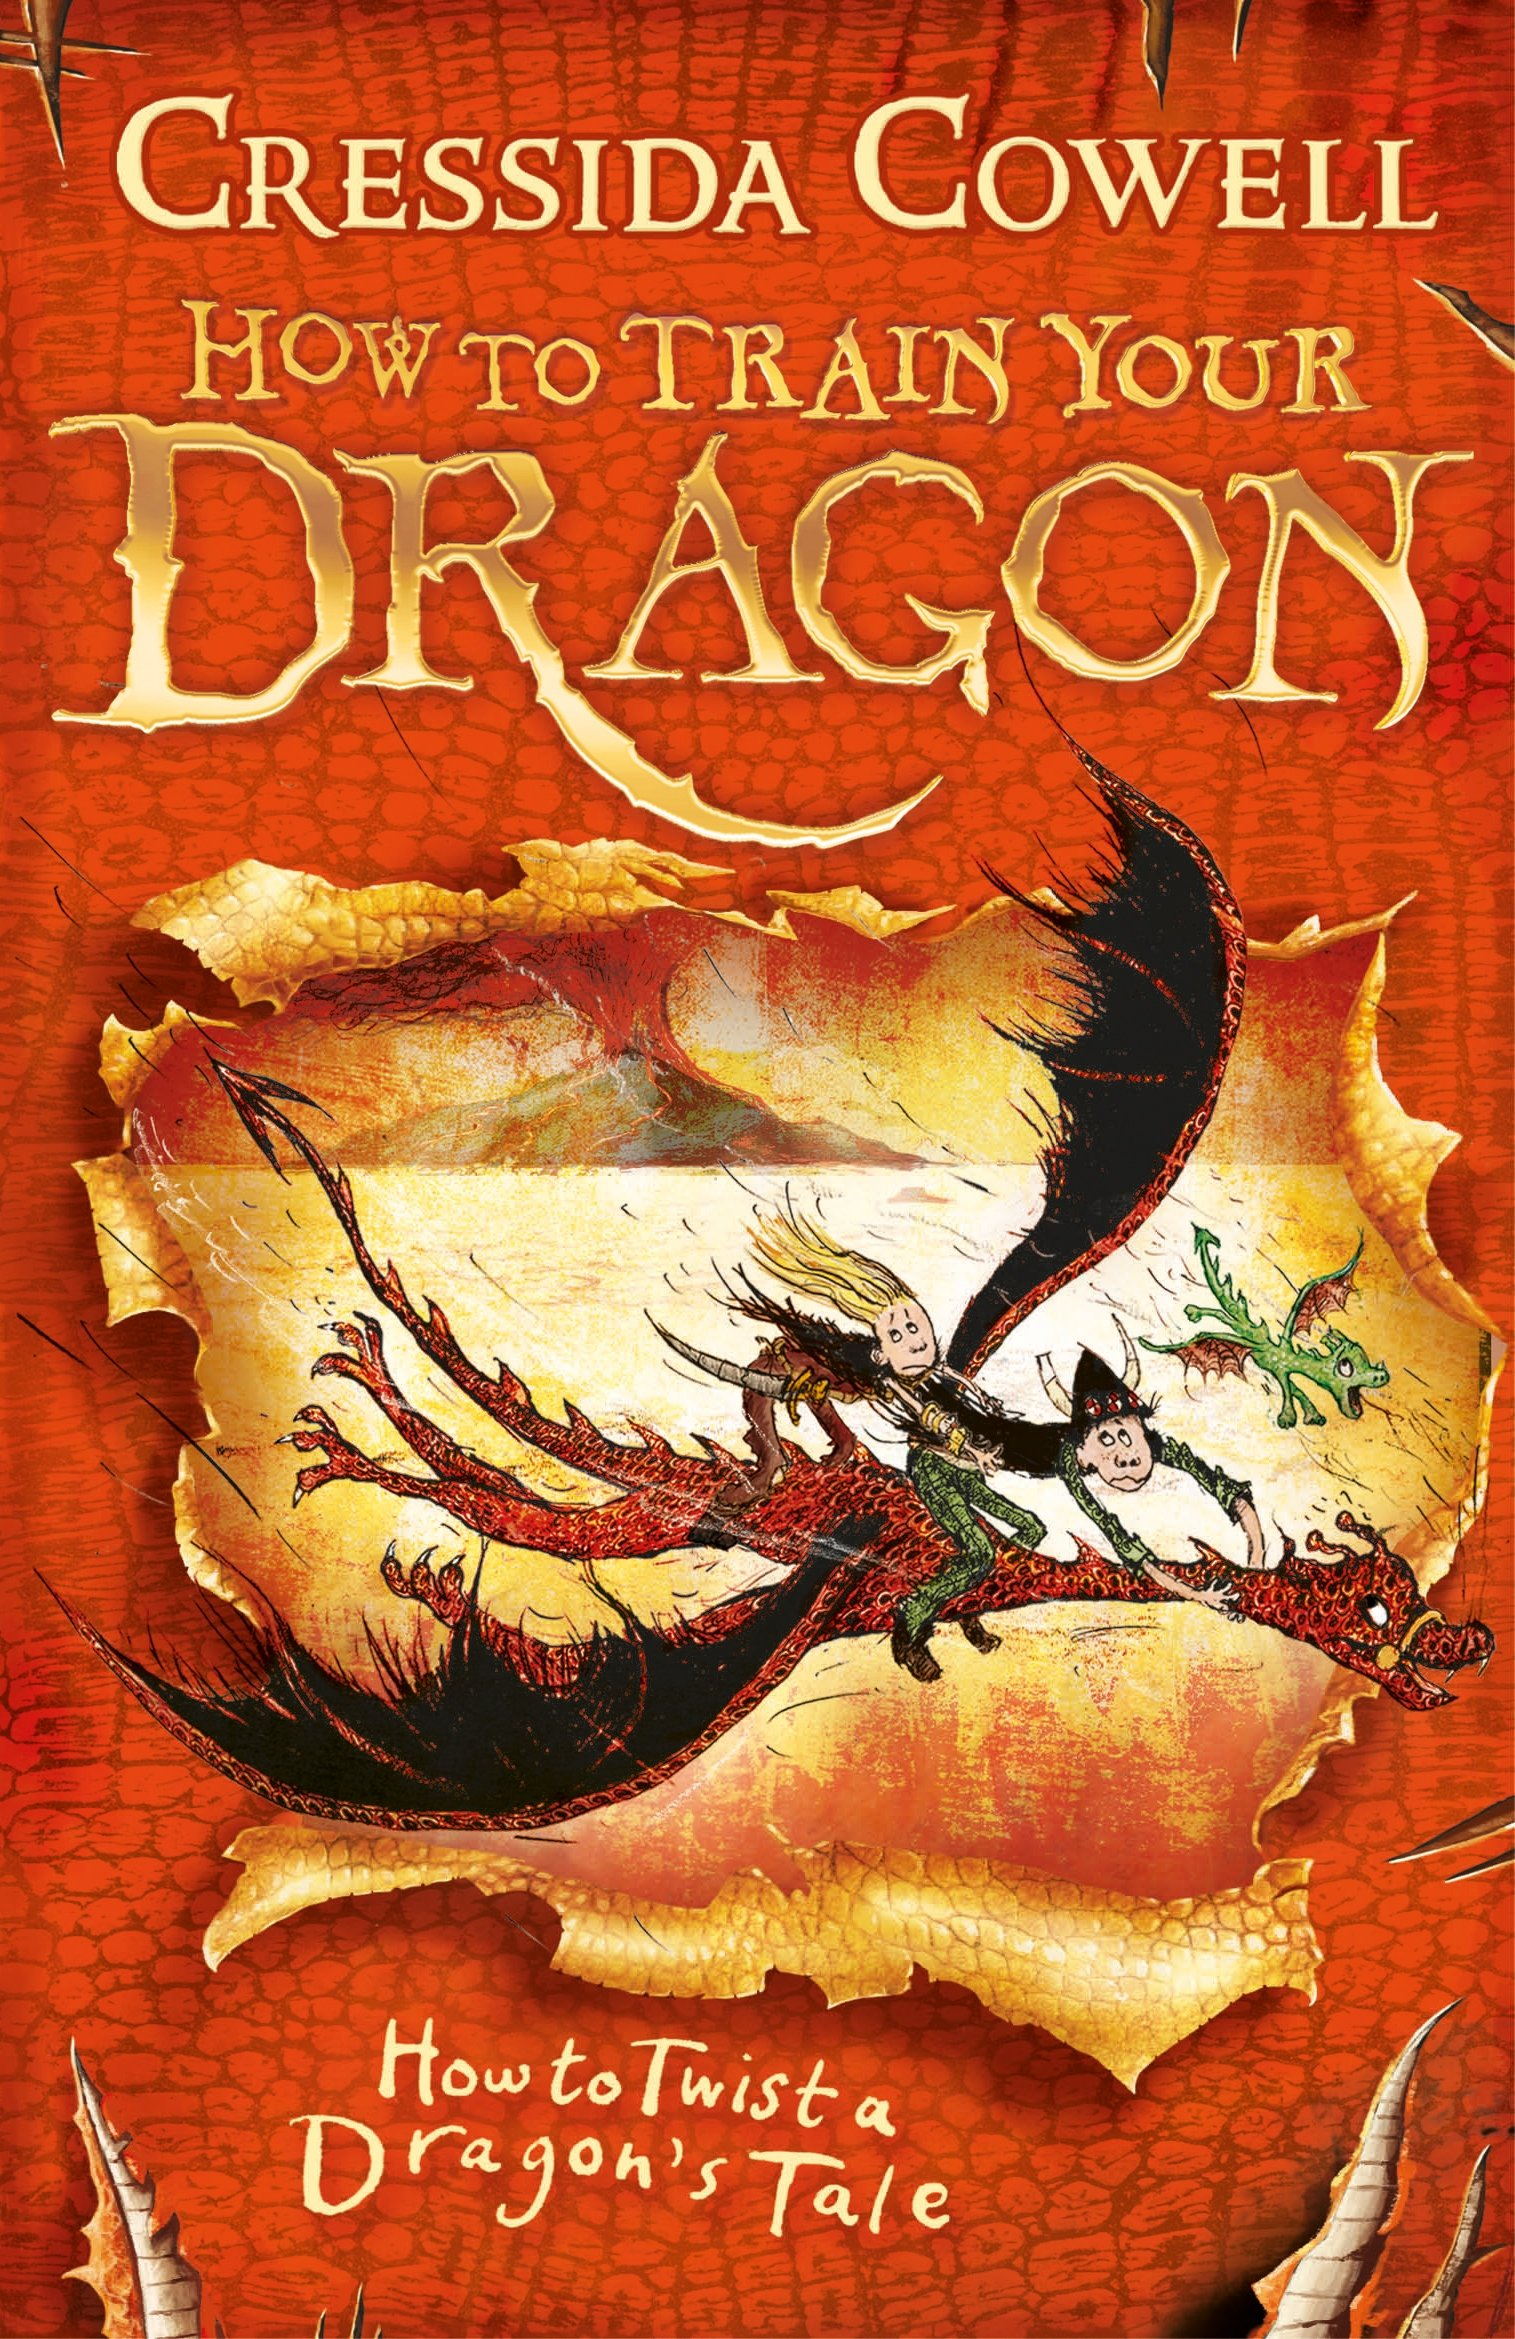 How to Twist a Dragon's Tale - listen book free online